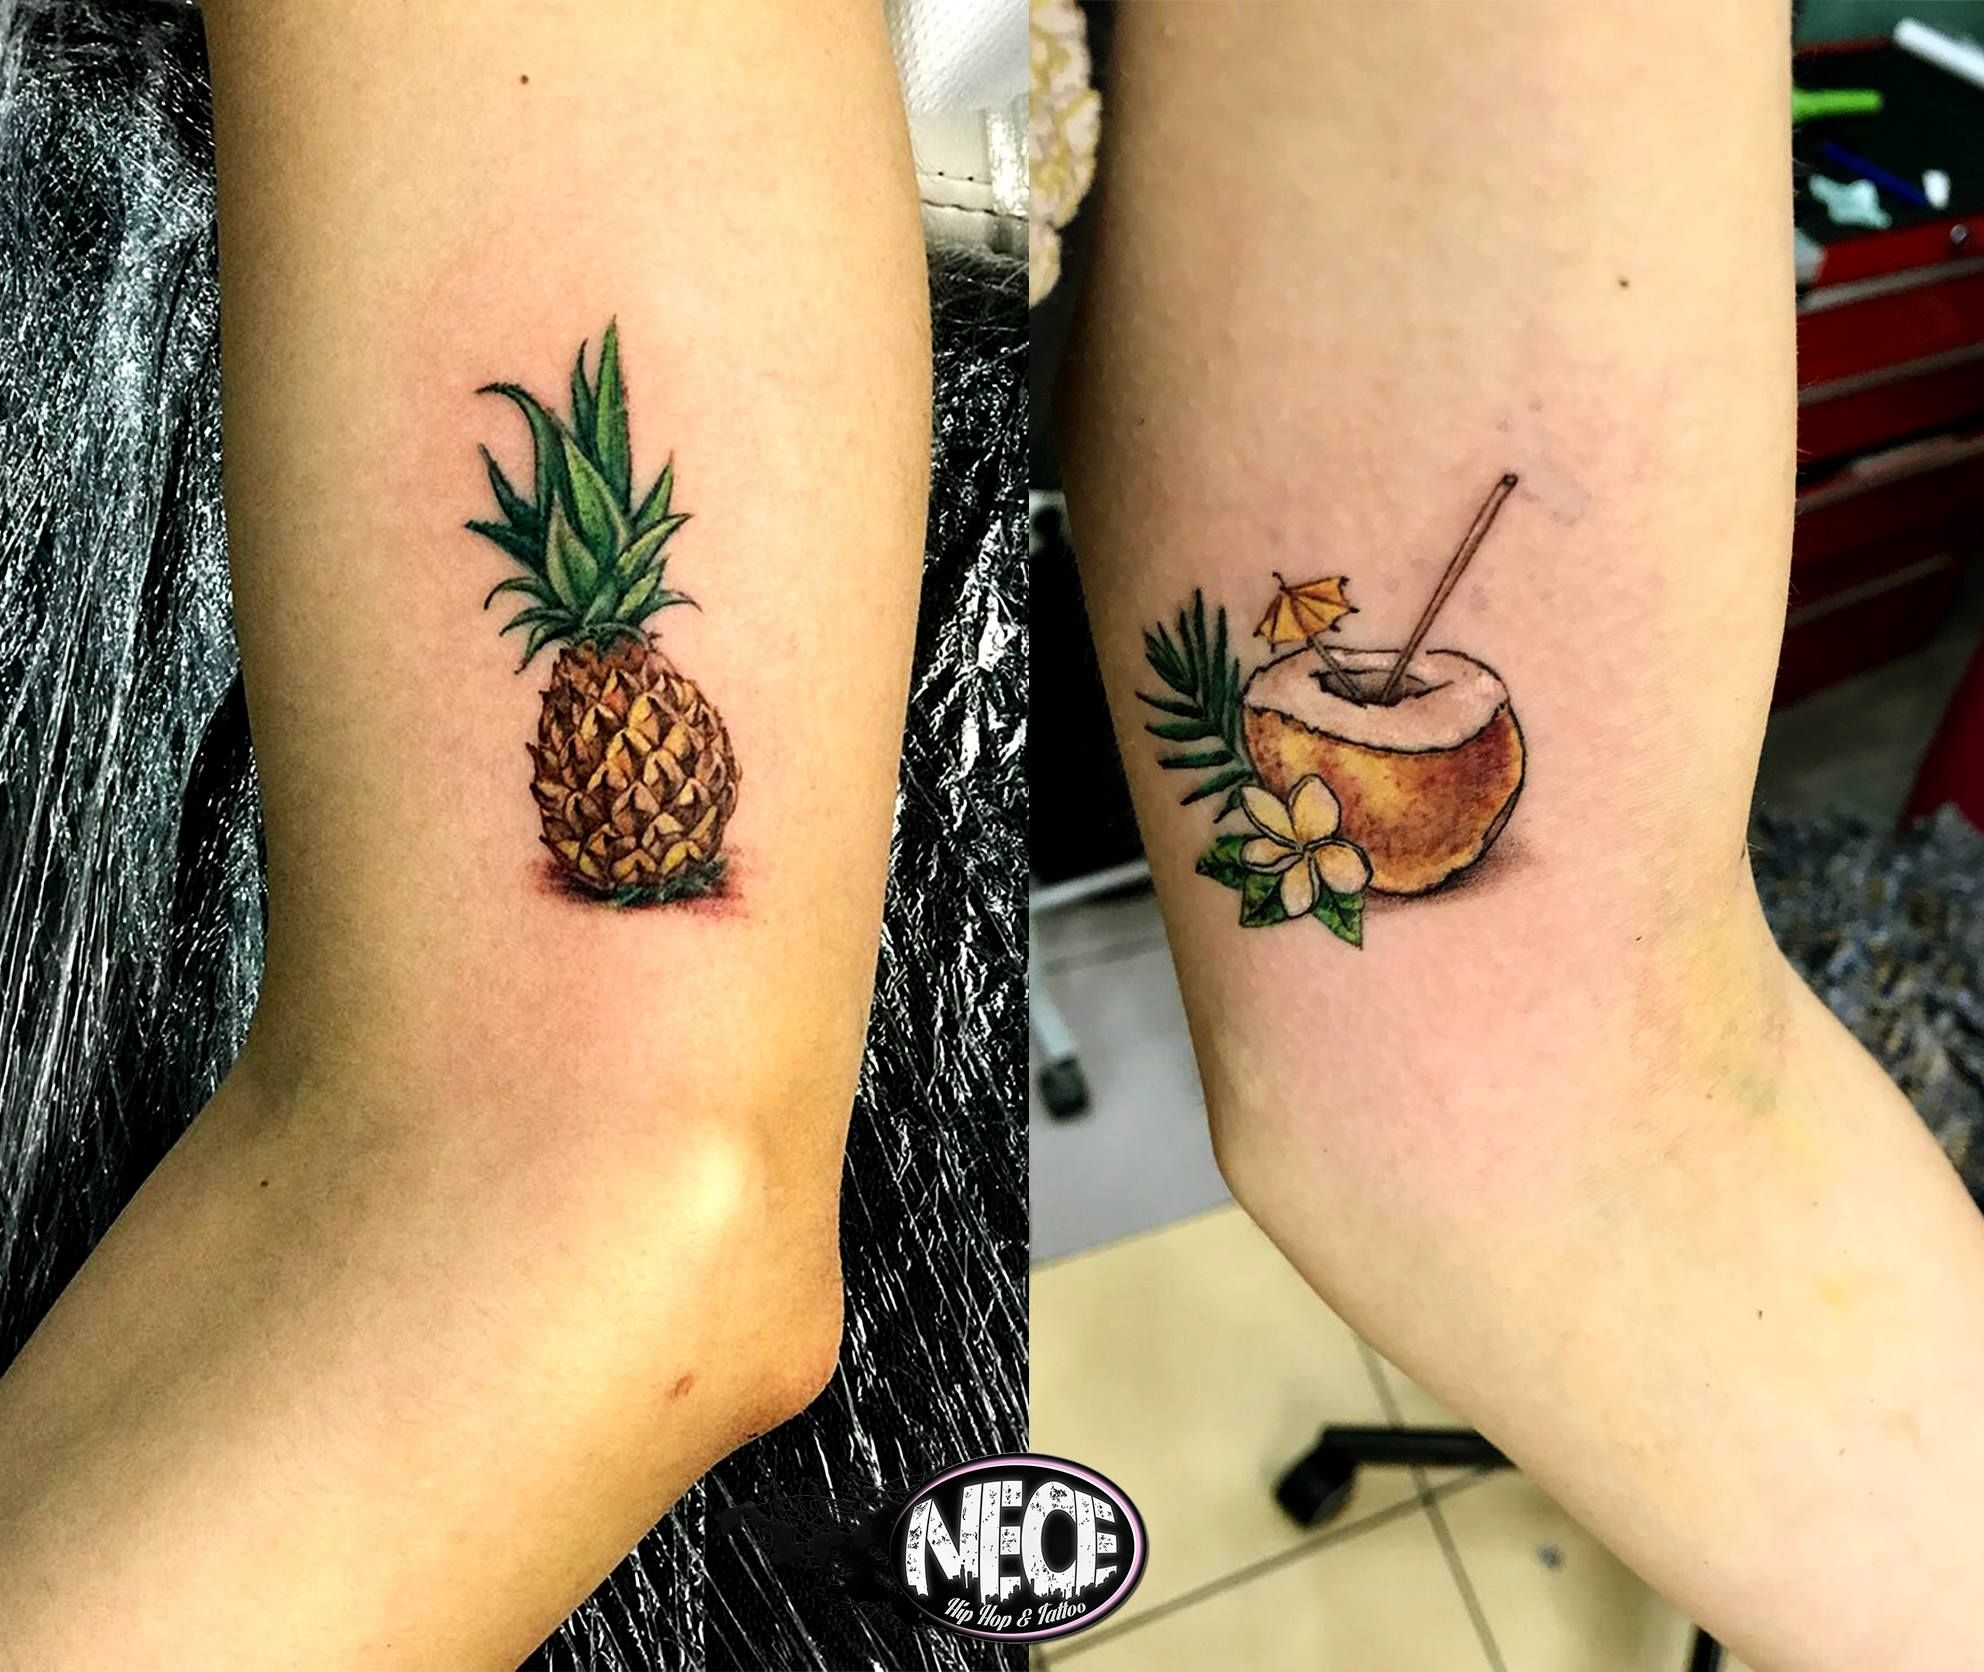 40 Coconut Tattoo Designs For Men – Tropical Fruit Ink Ideas 40 Coconut Tattoo Designs For Men – Tropical Fruit Ink Ideas new pics